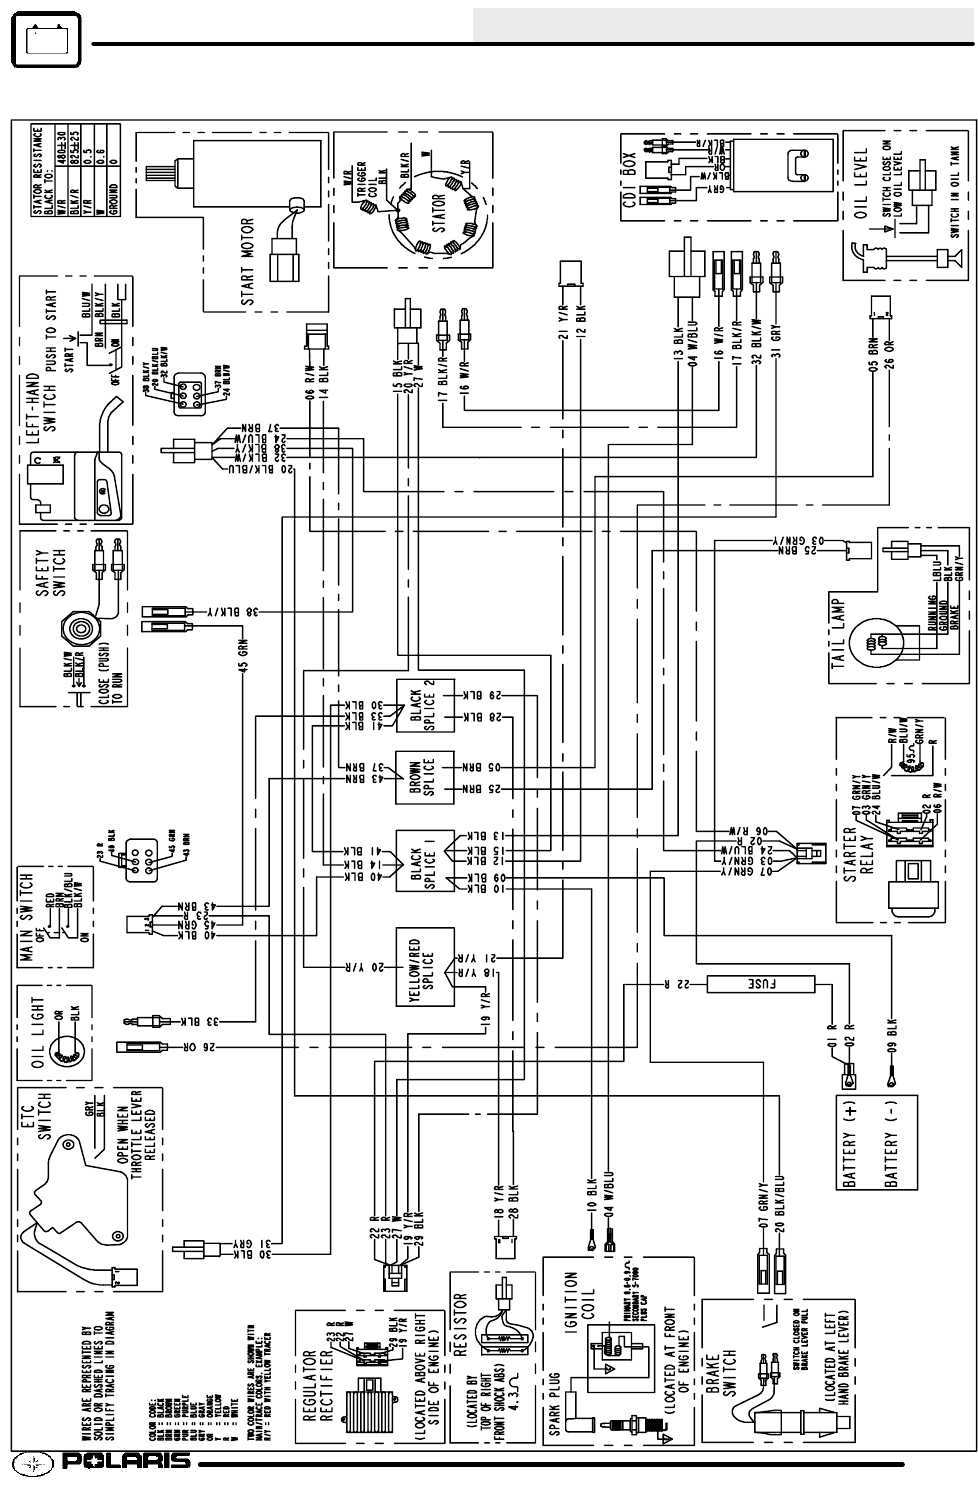 2006 Polaris Hawkeye 300 Wiring Diagram on 1995 ford ranger ignition wiring diagram